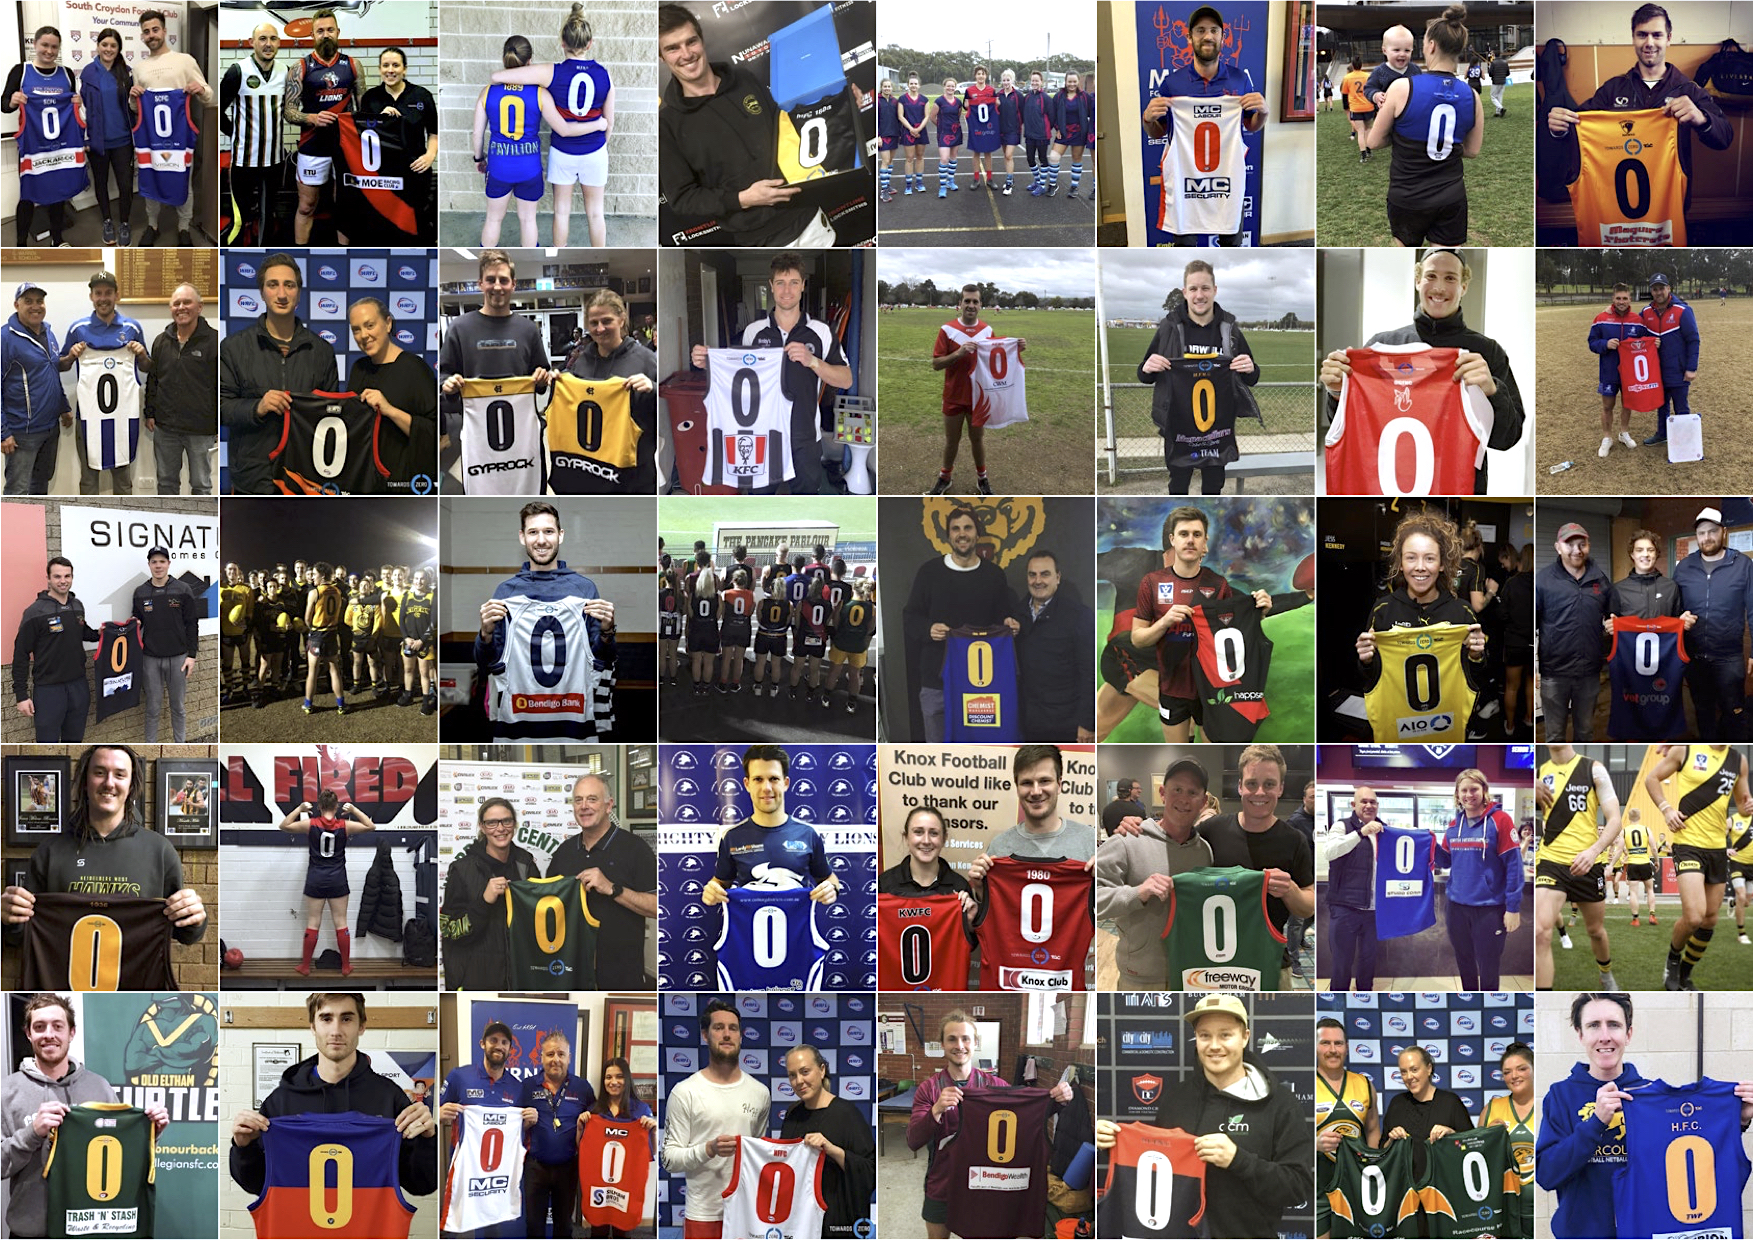 1000 VIC sporting clubs wear their support for TAC's Towards Zero Round + campaign via SDWM